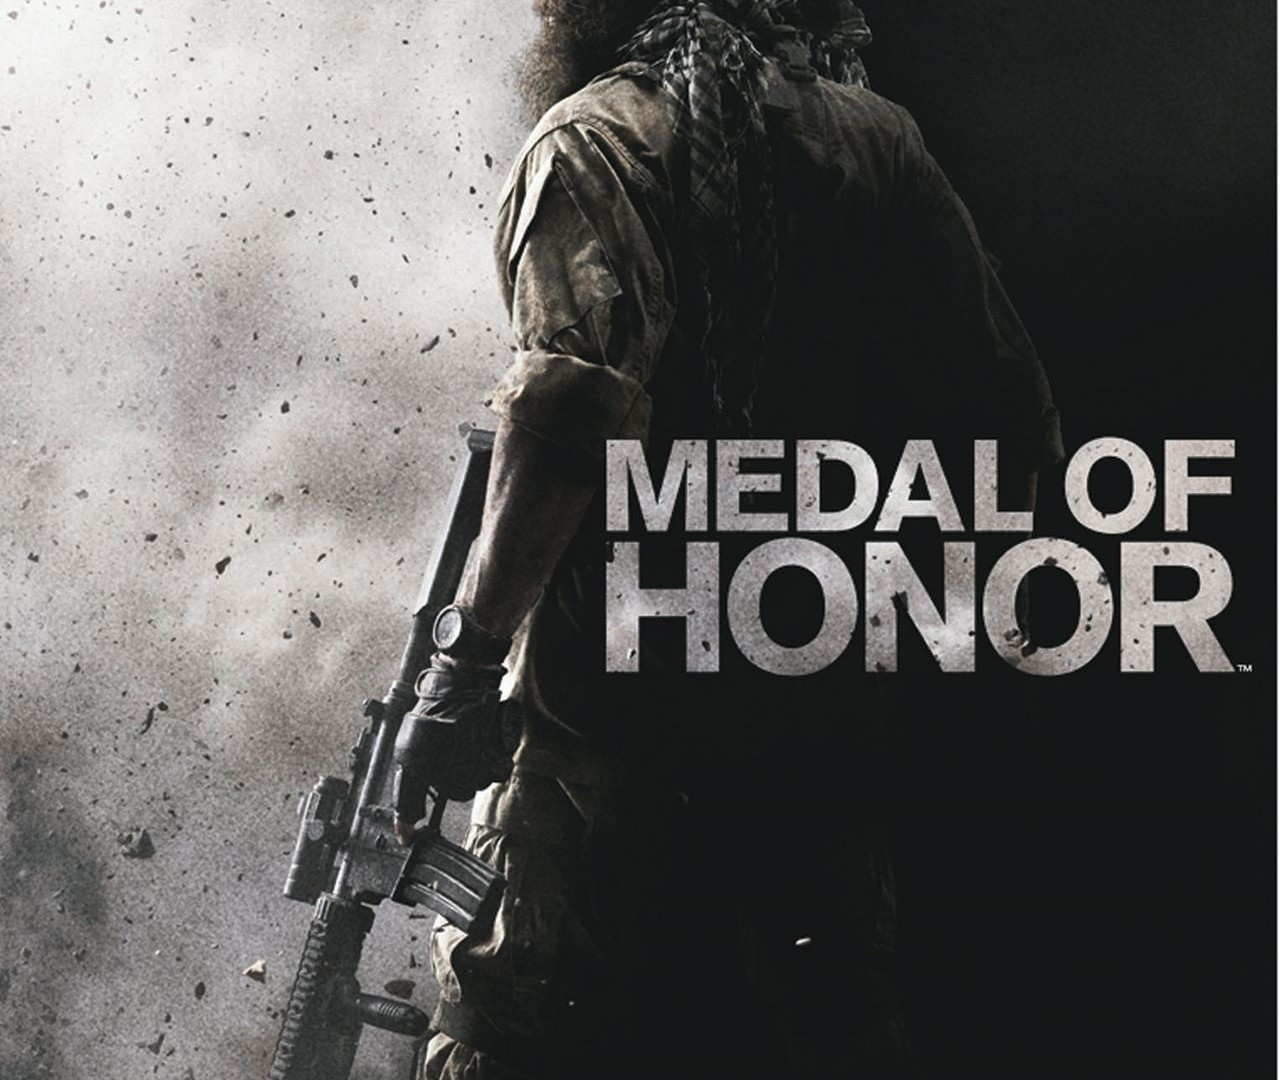 medal of honor essay The medal of honor essays: over 180,000 the medal of honor essays, the medal of honor term papers, the medal of honor research paper, book reports 184 990 essays, term and research papers available for unlimited access.